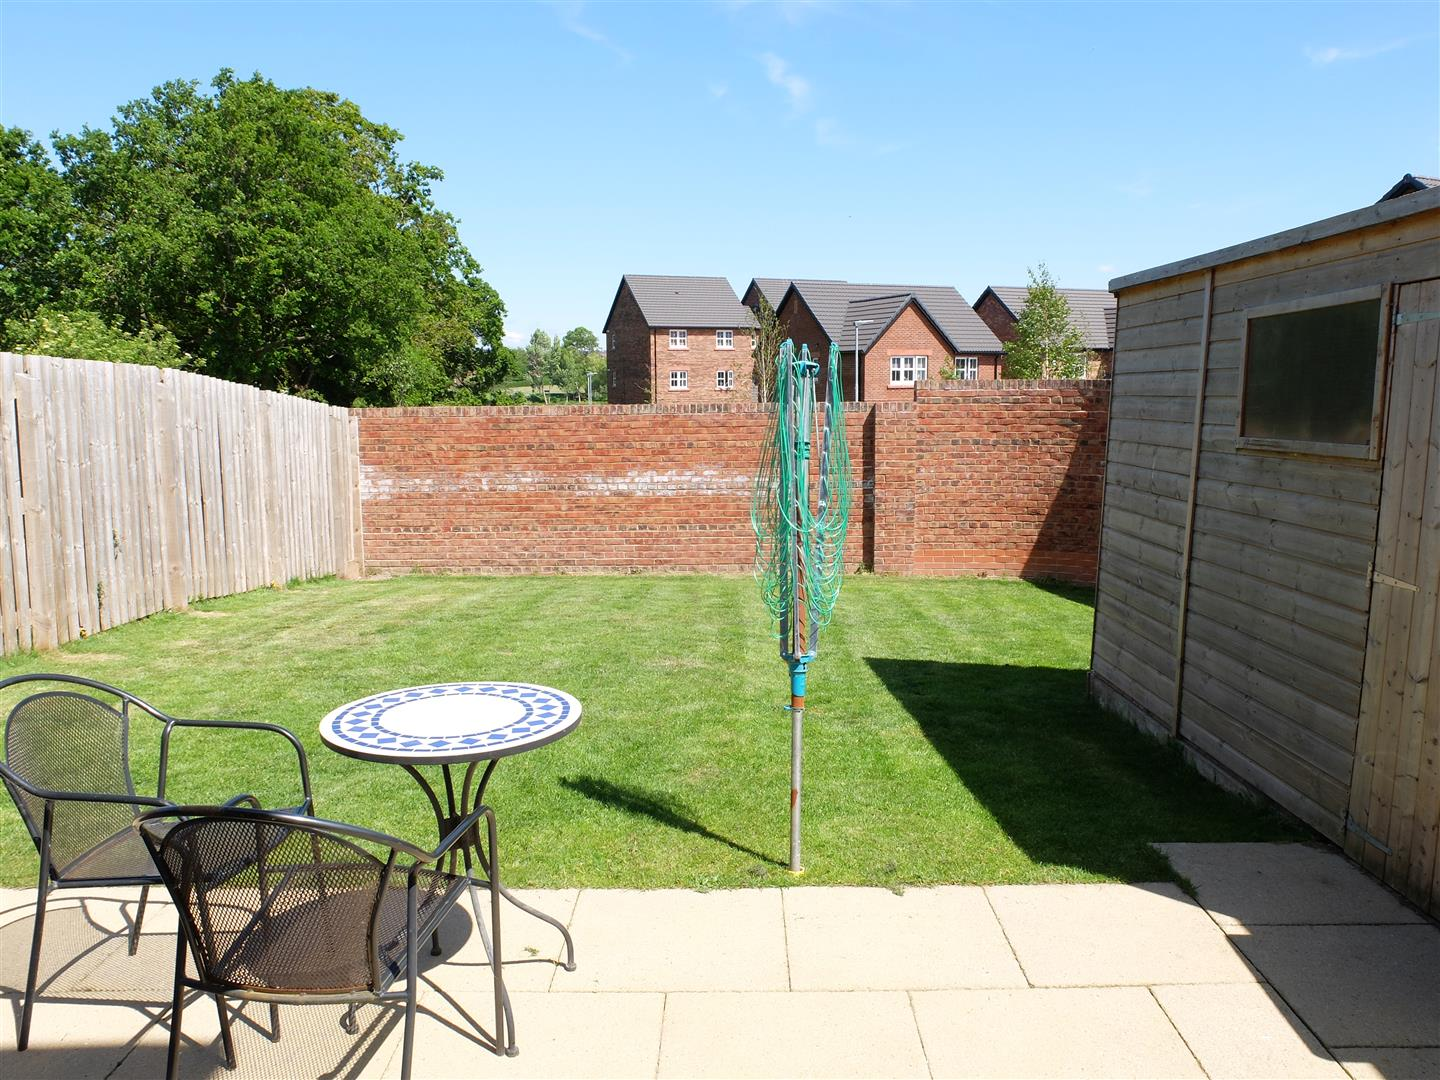 3 Bedrooms House - Semi-Detached For Sale 3 Goodwood Drive Carlisle